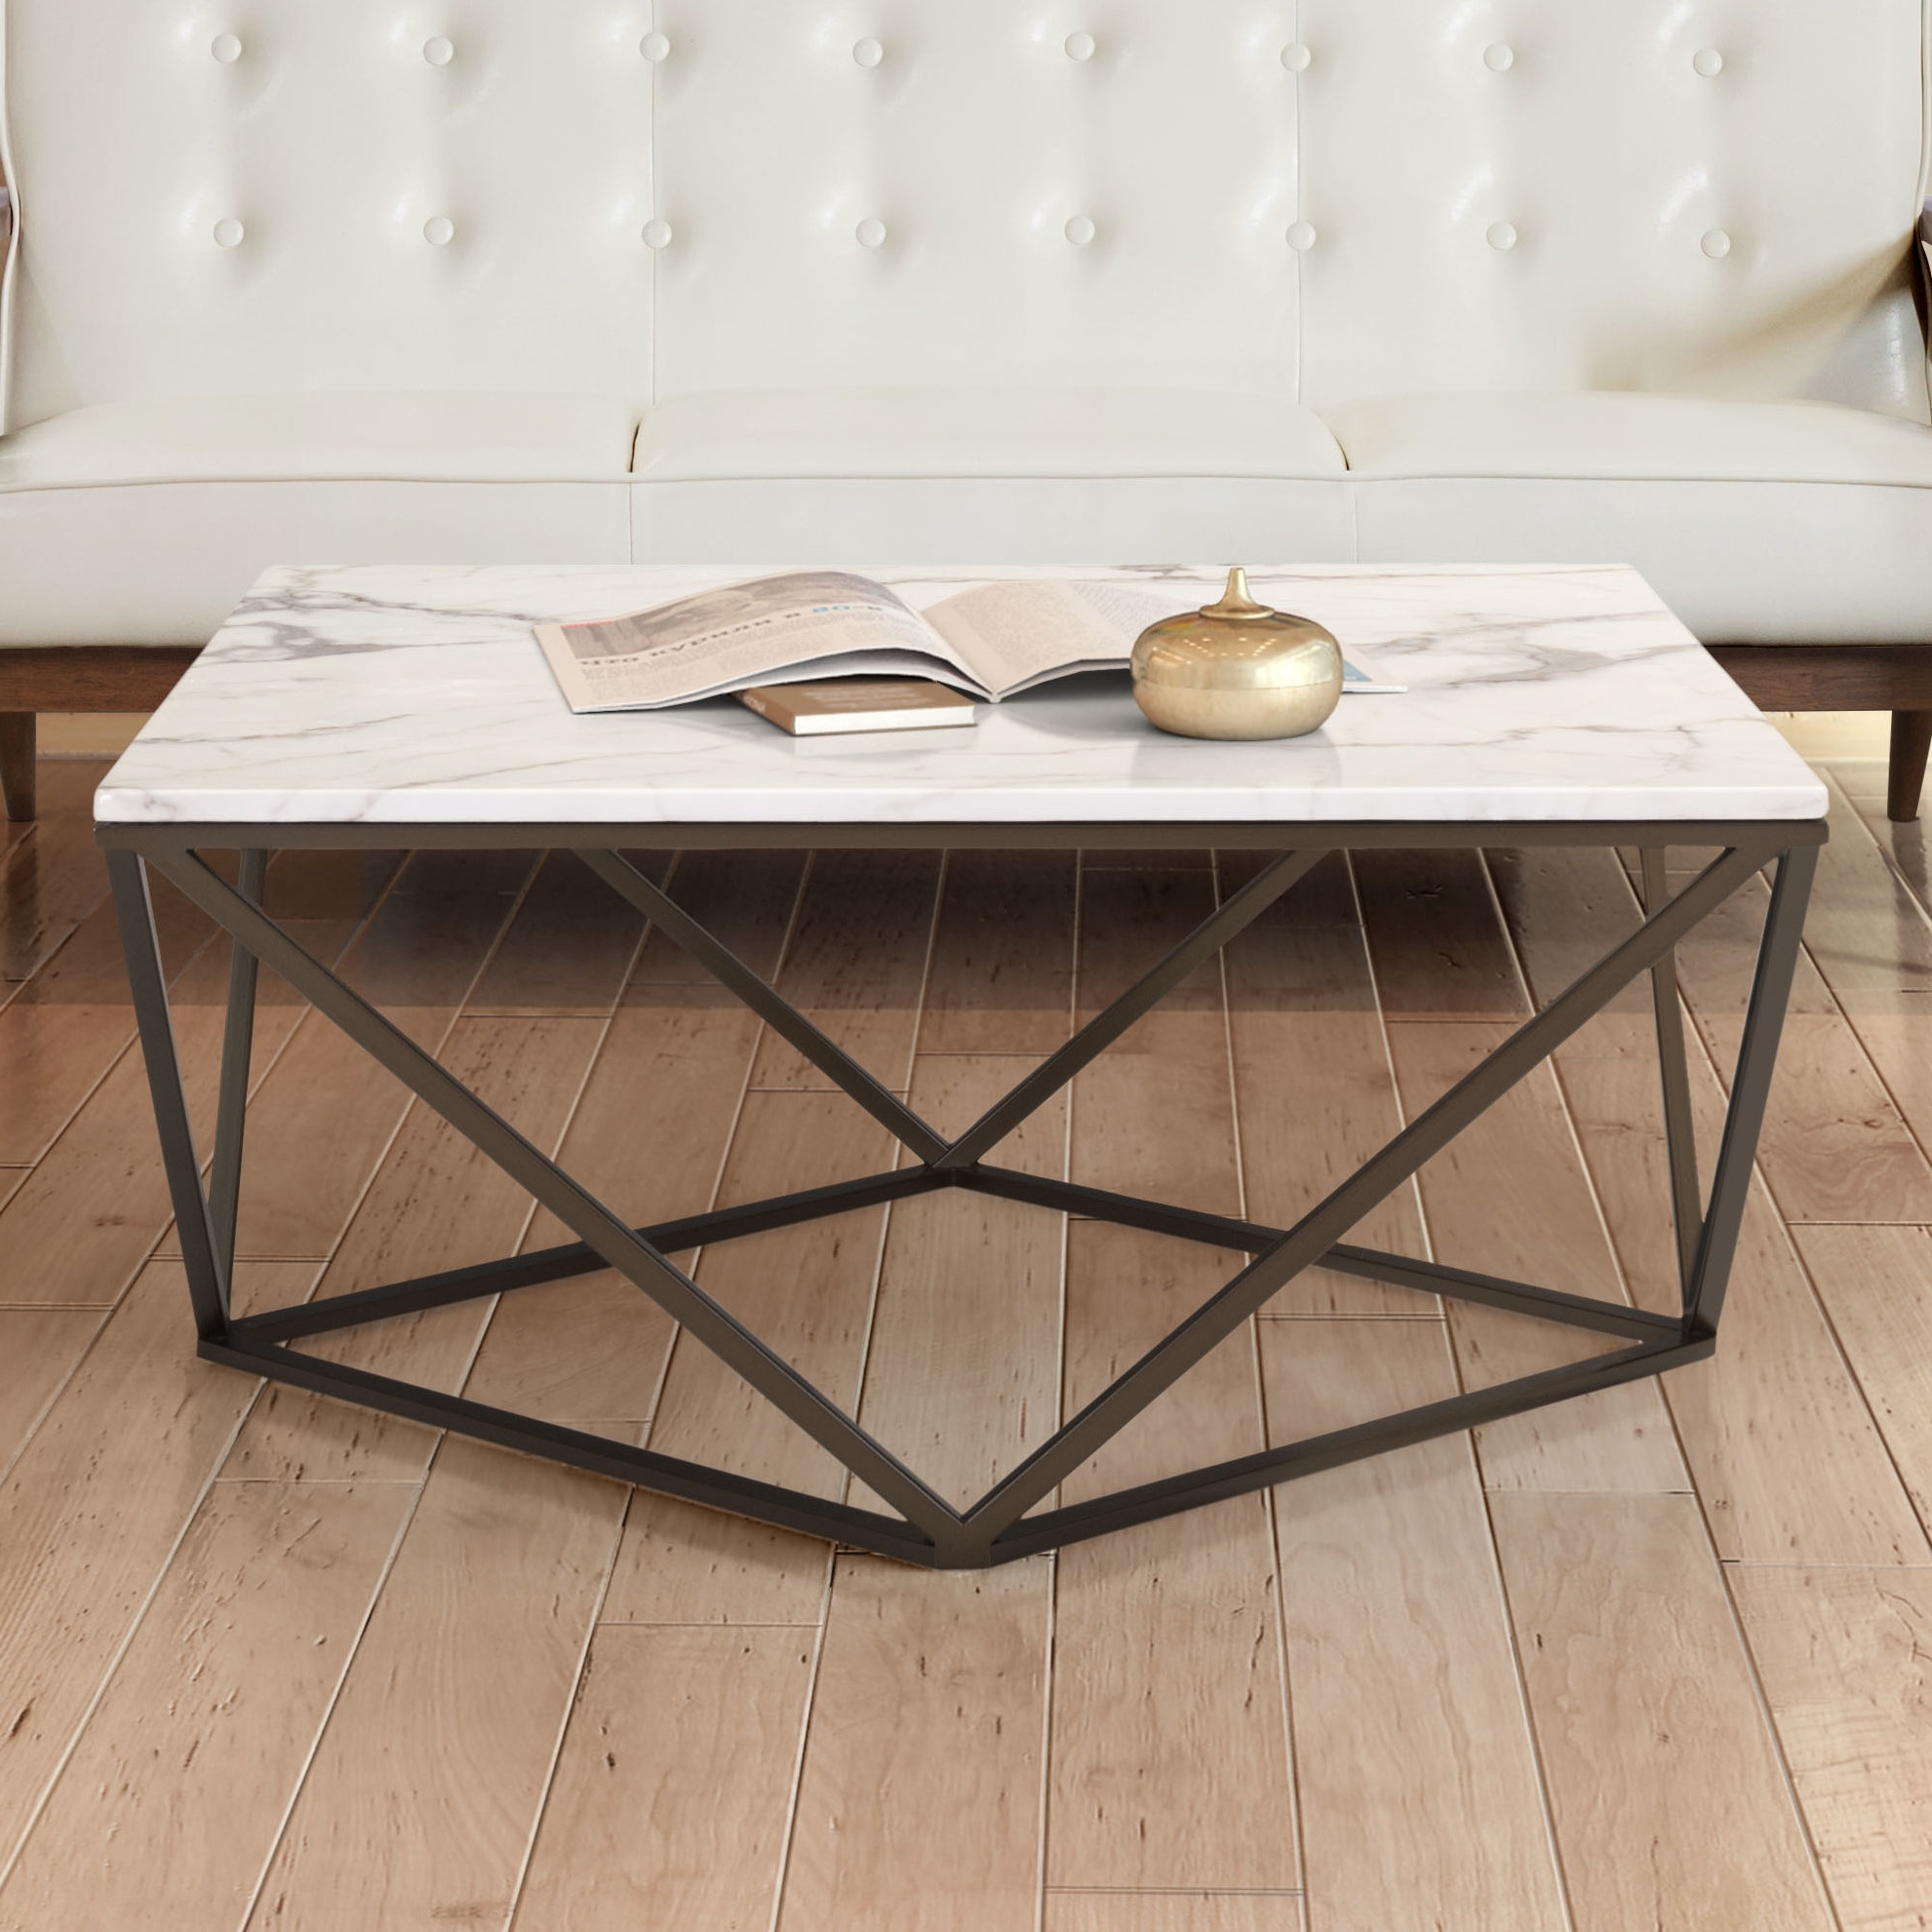 Wayfair For Most Current Iron Marble Coffee Tables (View 3 of 20)